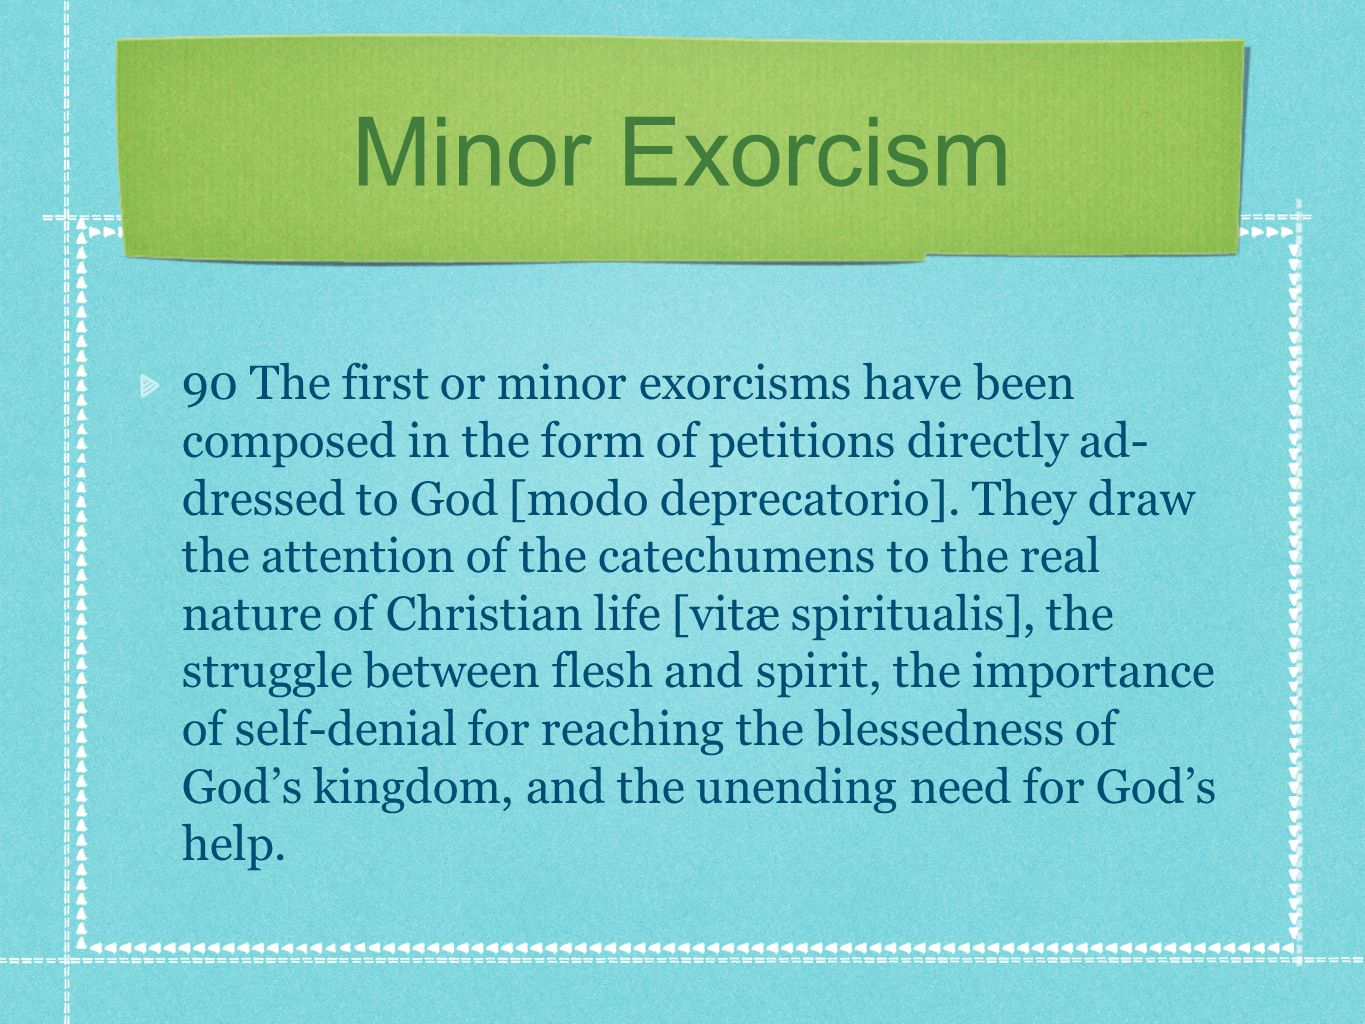 Minor Exorcism 90 The first or minor exorcisms have been composed in the form of petitions directly ad- dressed to God [modo deprecatorio].